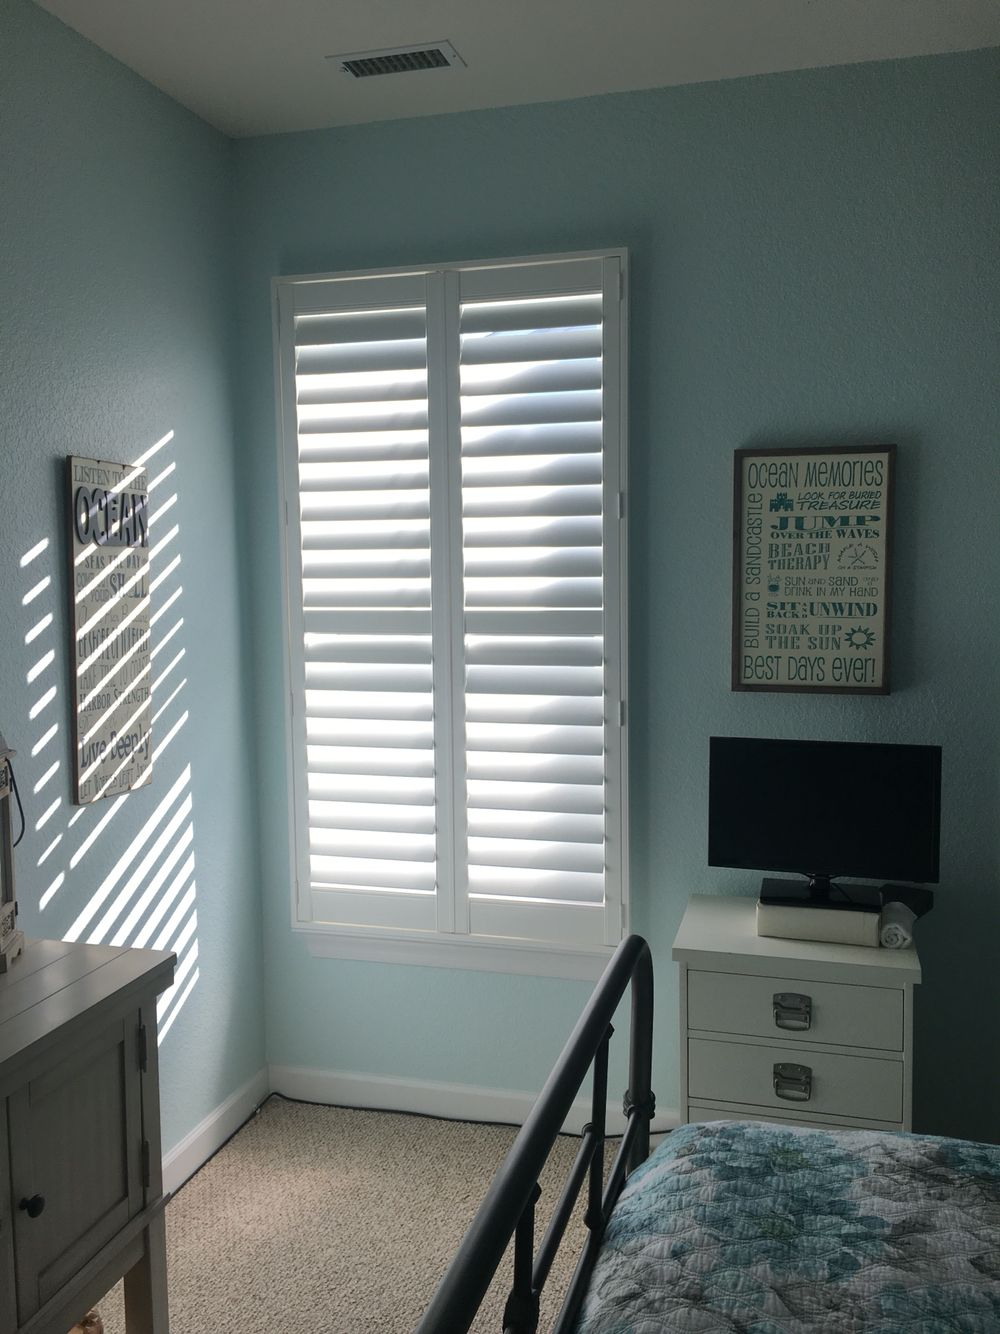 Plantation Shutter Single Window Eclipse 3 1 2 Inch Louver Clearview Tilt L Frame Outside Mounted